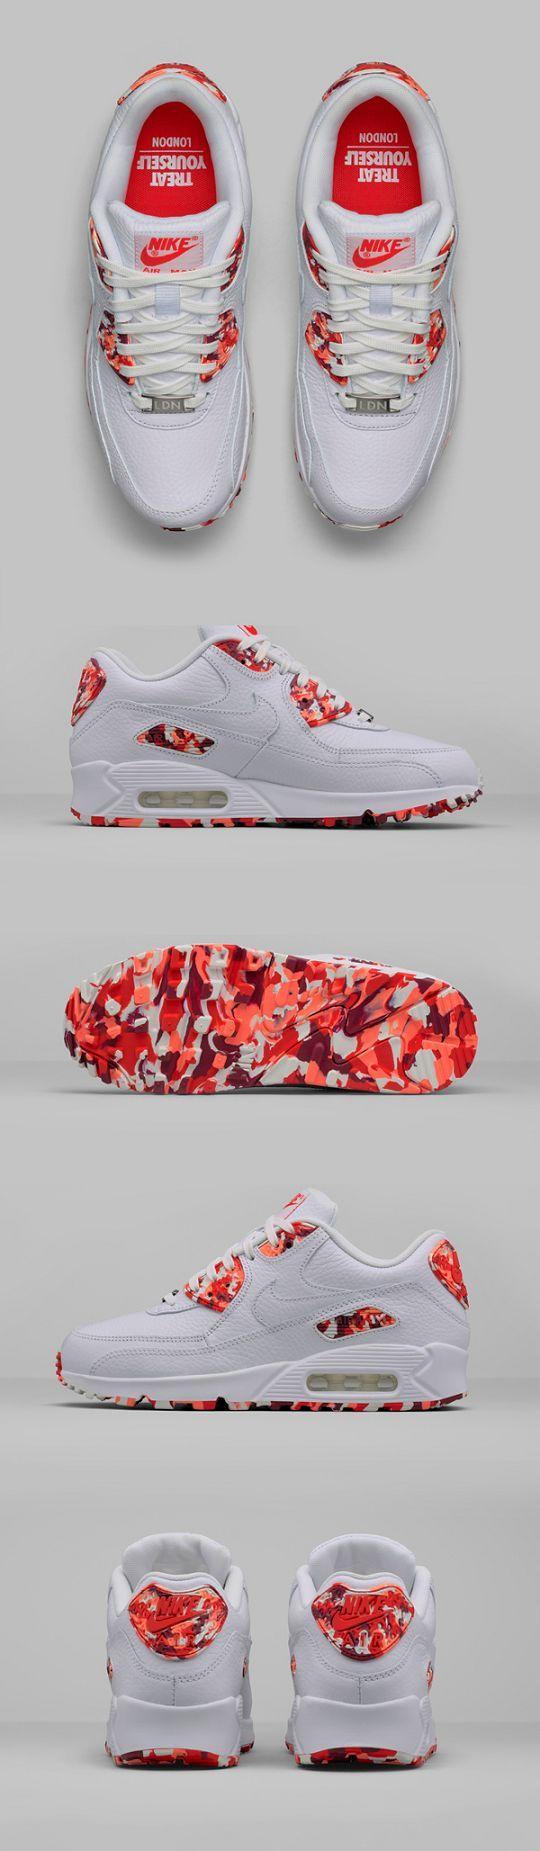 It is so beautiful and exquisite Nike sneakers sale happening now!Buy sport shoes at up to 70% OFF retail prices,only $21 to get it too